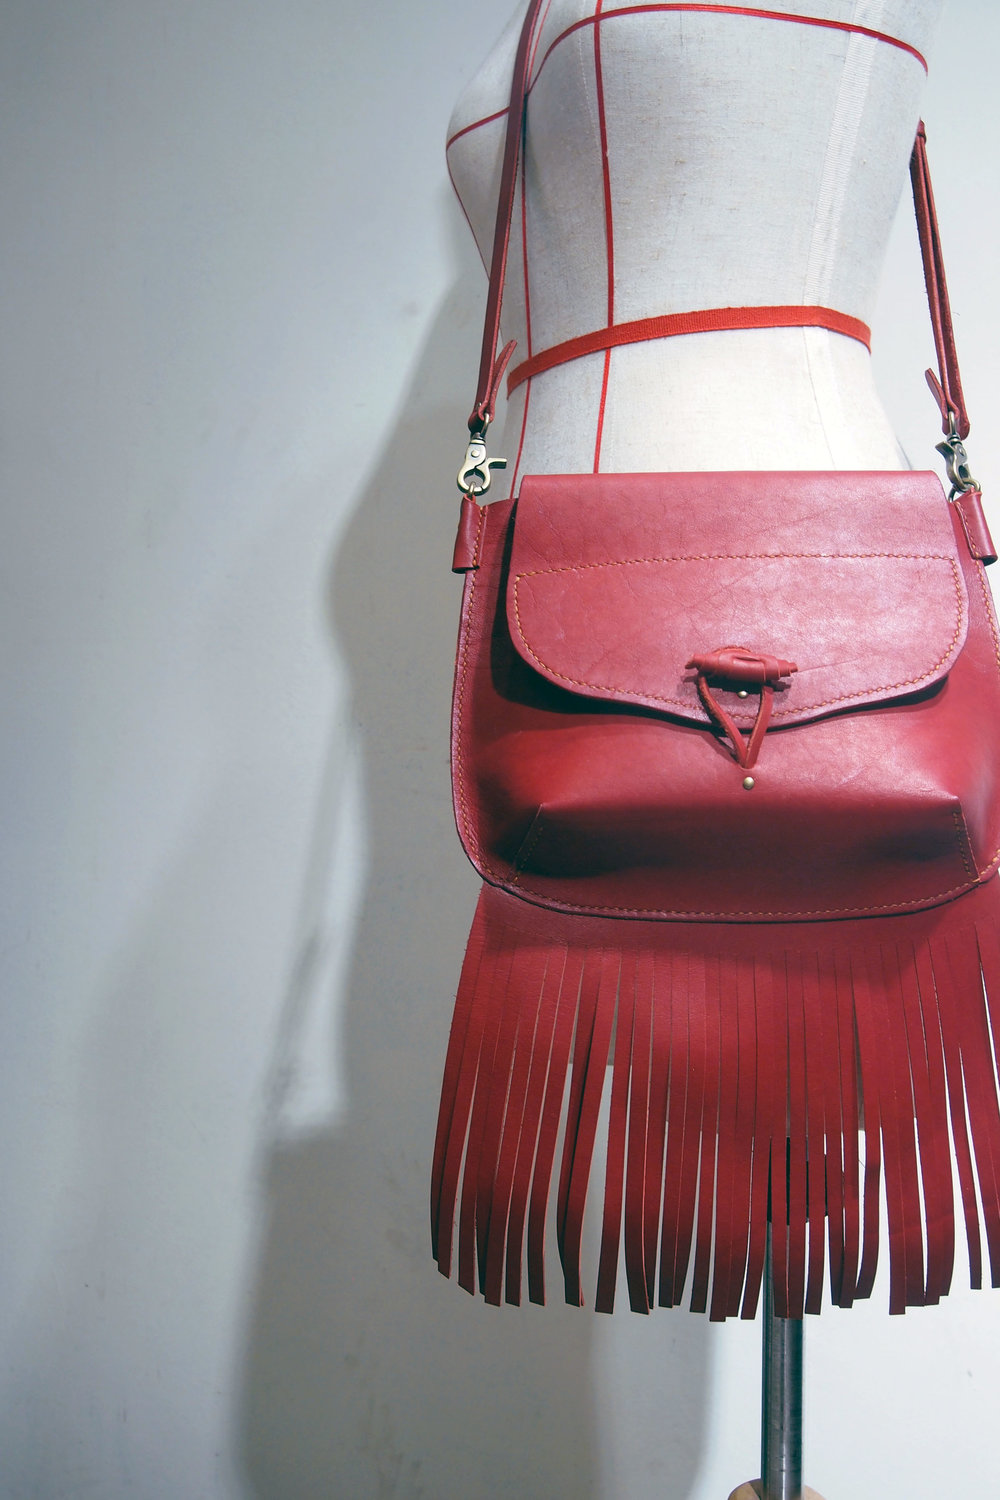 Fringe shoulder bag - by our student Amy